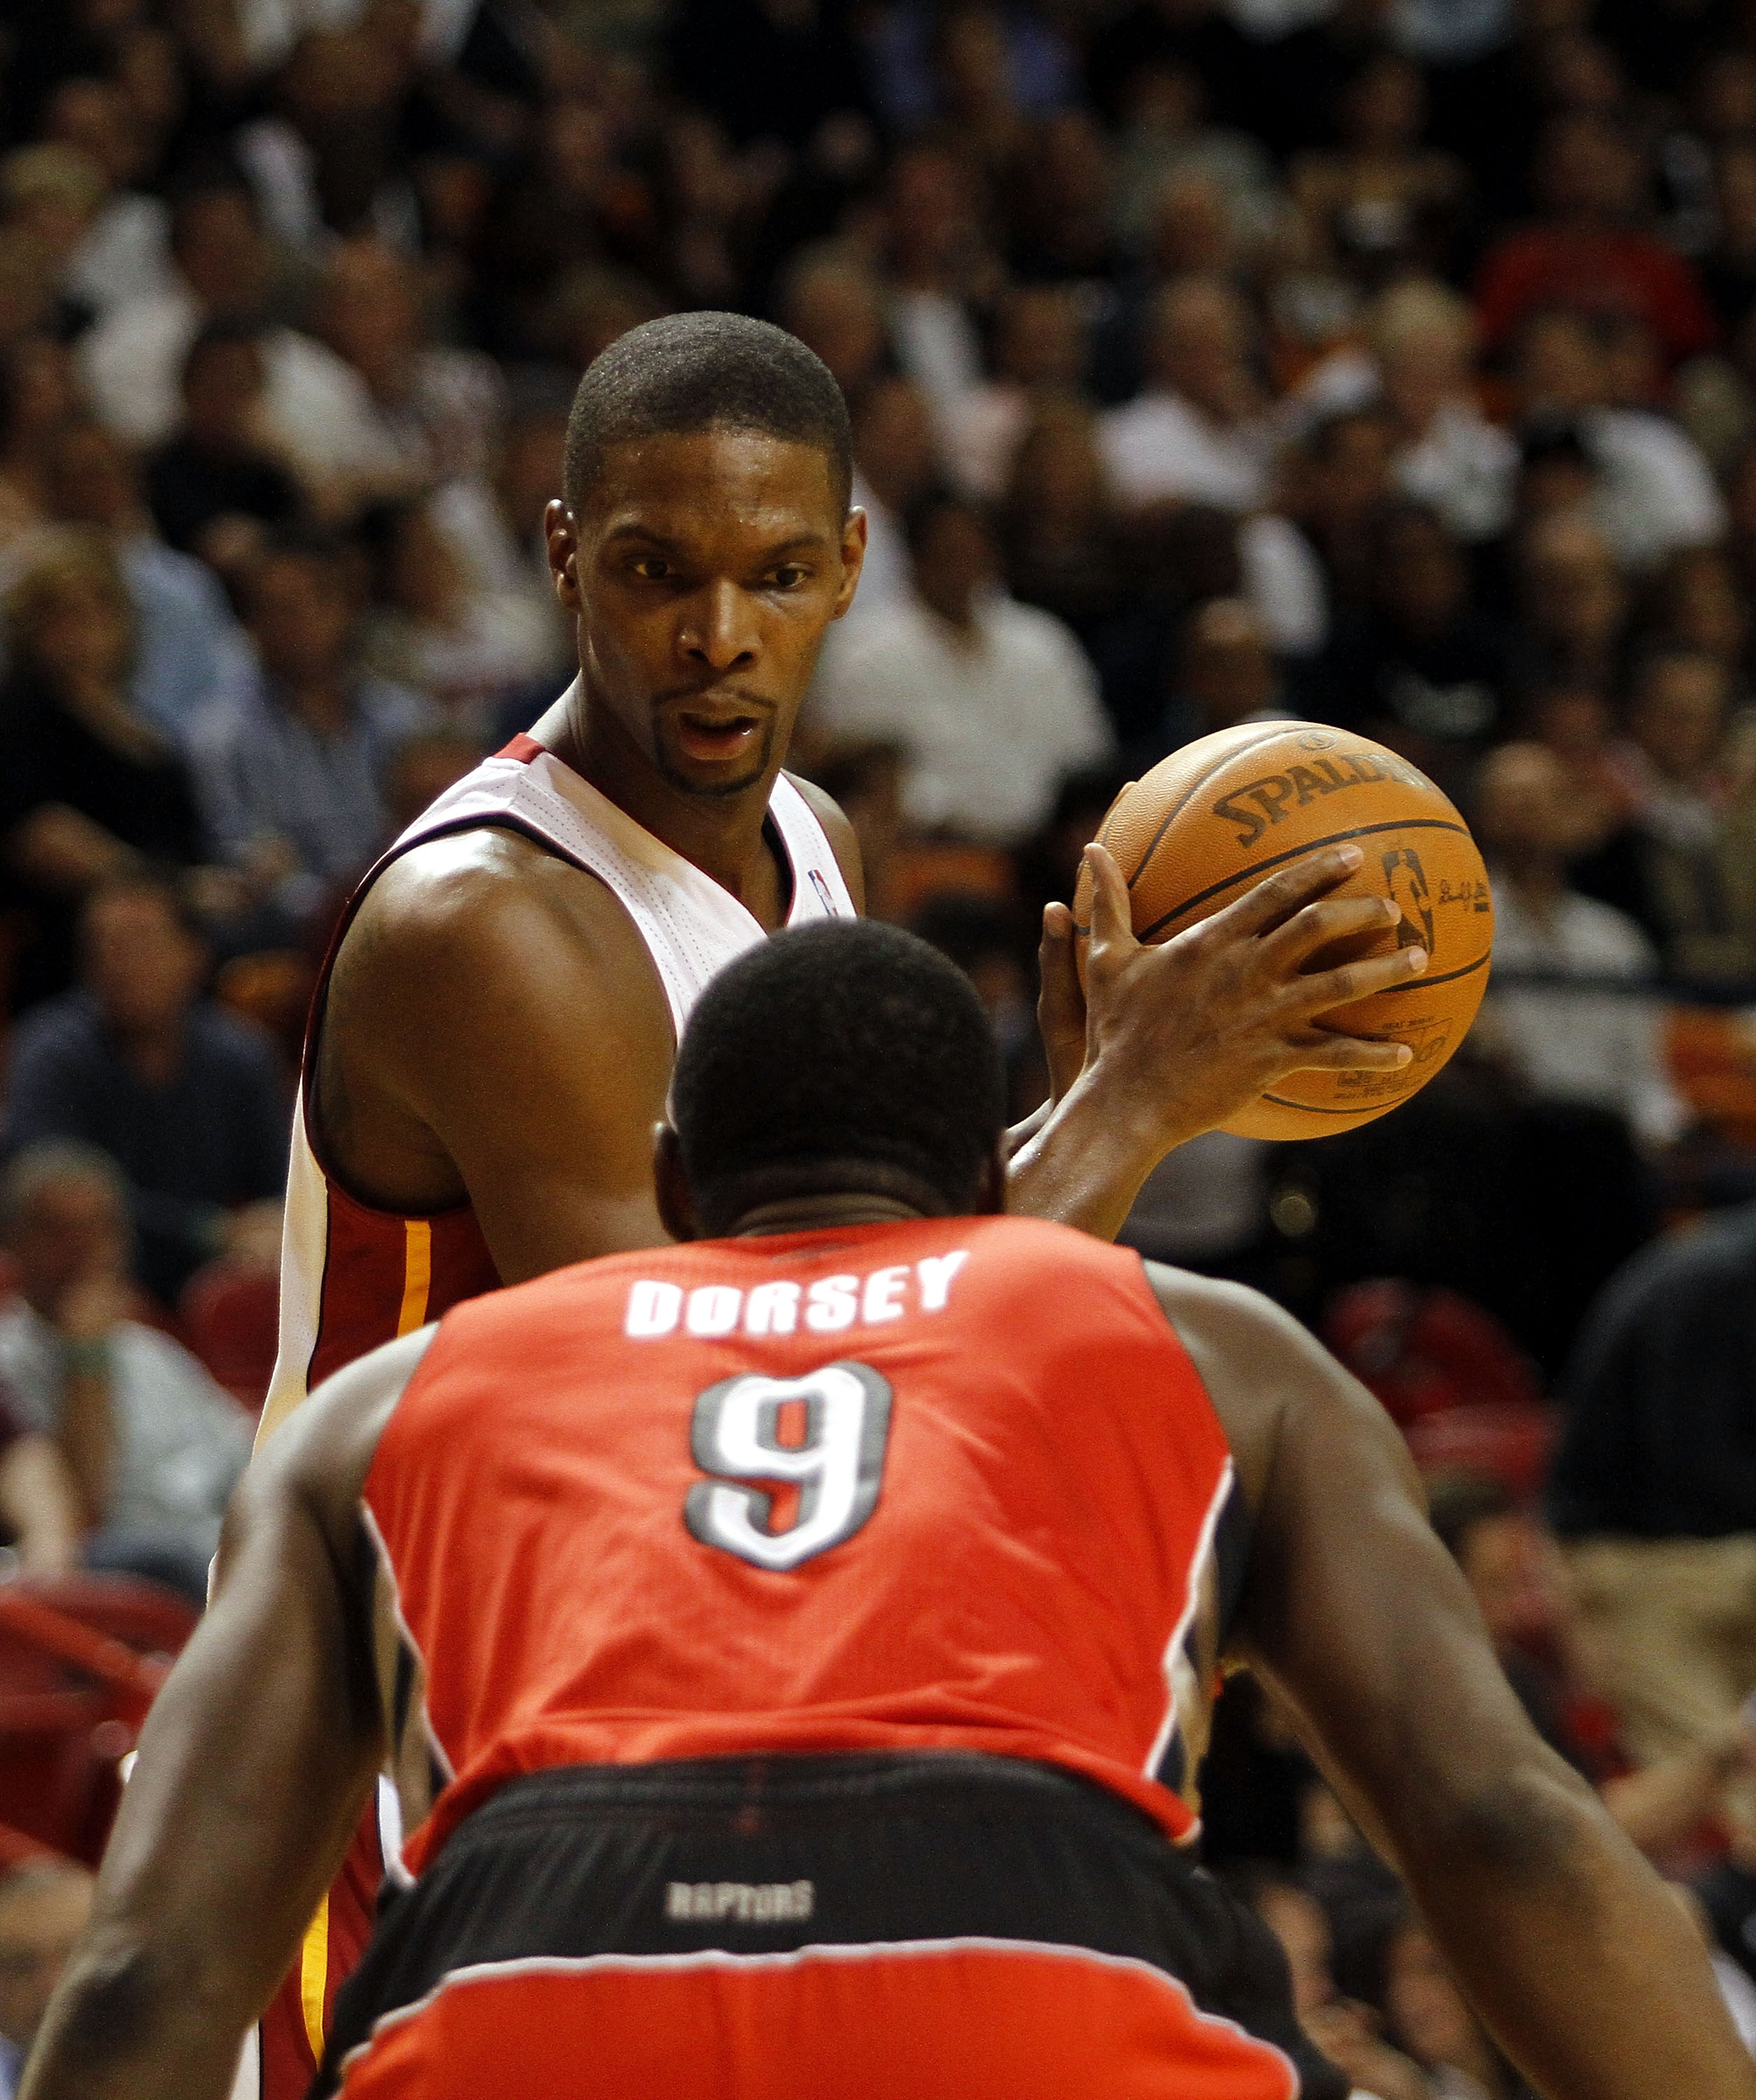 MIAMI - NOVEMBER 13:  Forward Chris Bosh #1 of the Miami Heat against Joey Dorsey #9 of the Toronto Raptors at American Airlines Arena on November 13, 2010 in Miami, Florida. NOTE TO USER: User expressly acknowledges and agrees that, by downloading and or